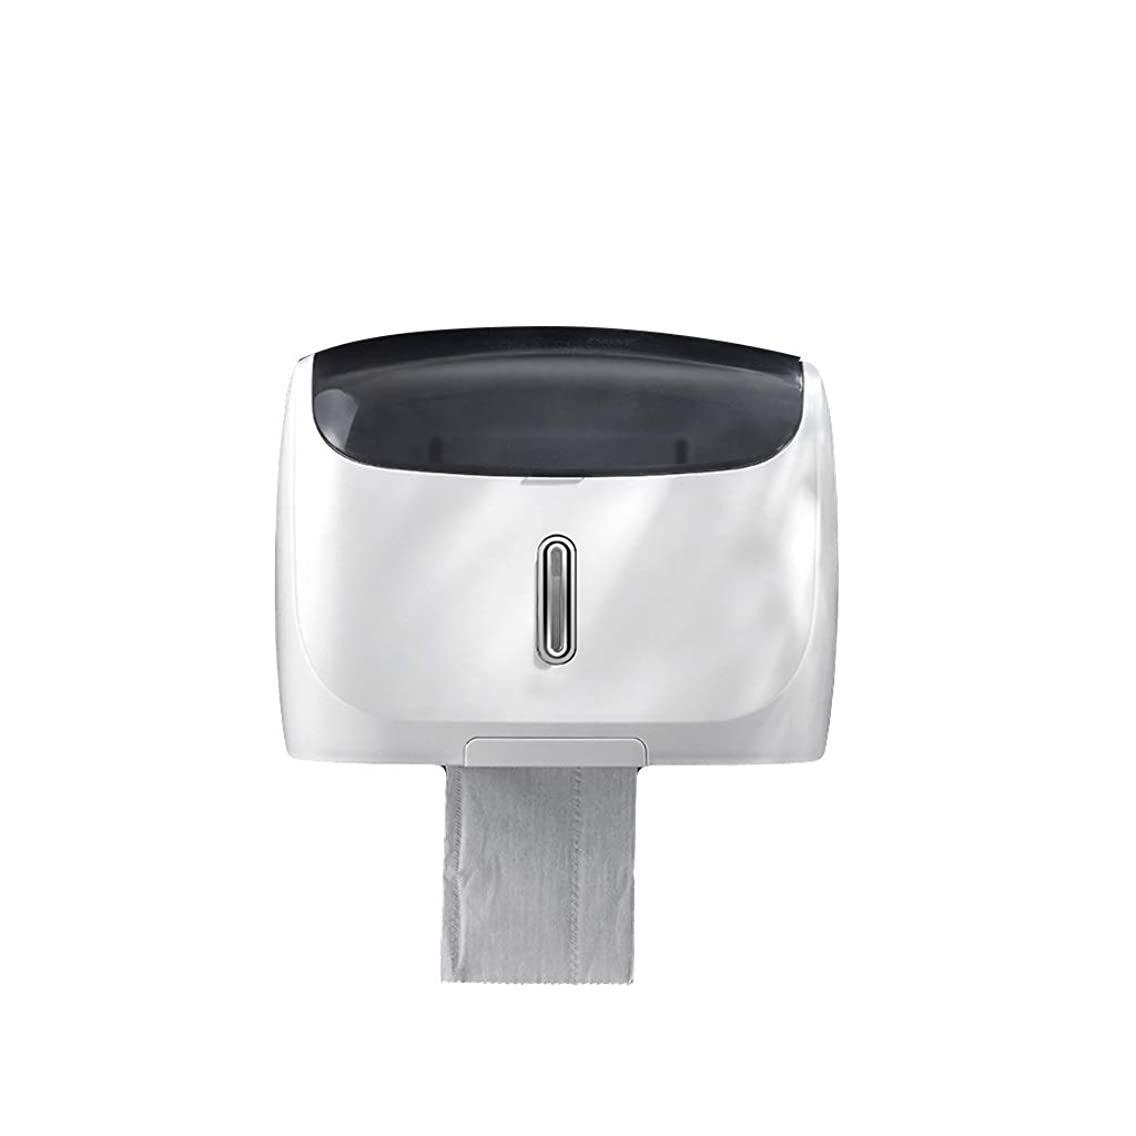 Sanitary Carton Toilet Toilet Toilet Toilet Toilet Toilet Toilet Creative Waterproof Paper Roll Tube LQX (color : B)